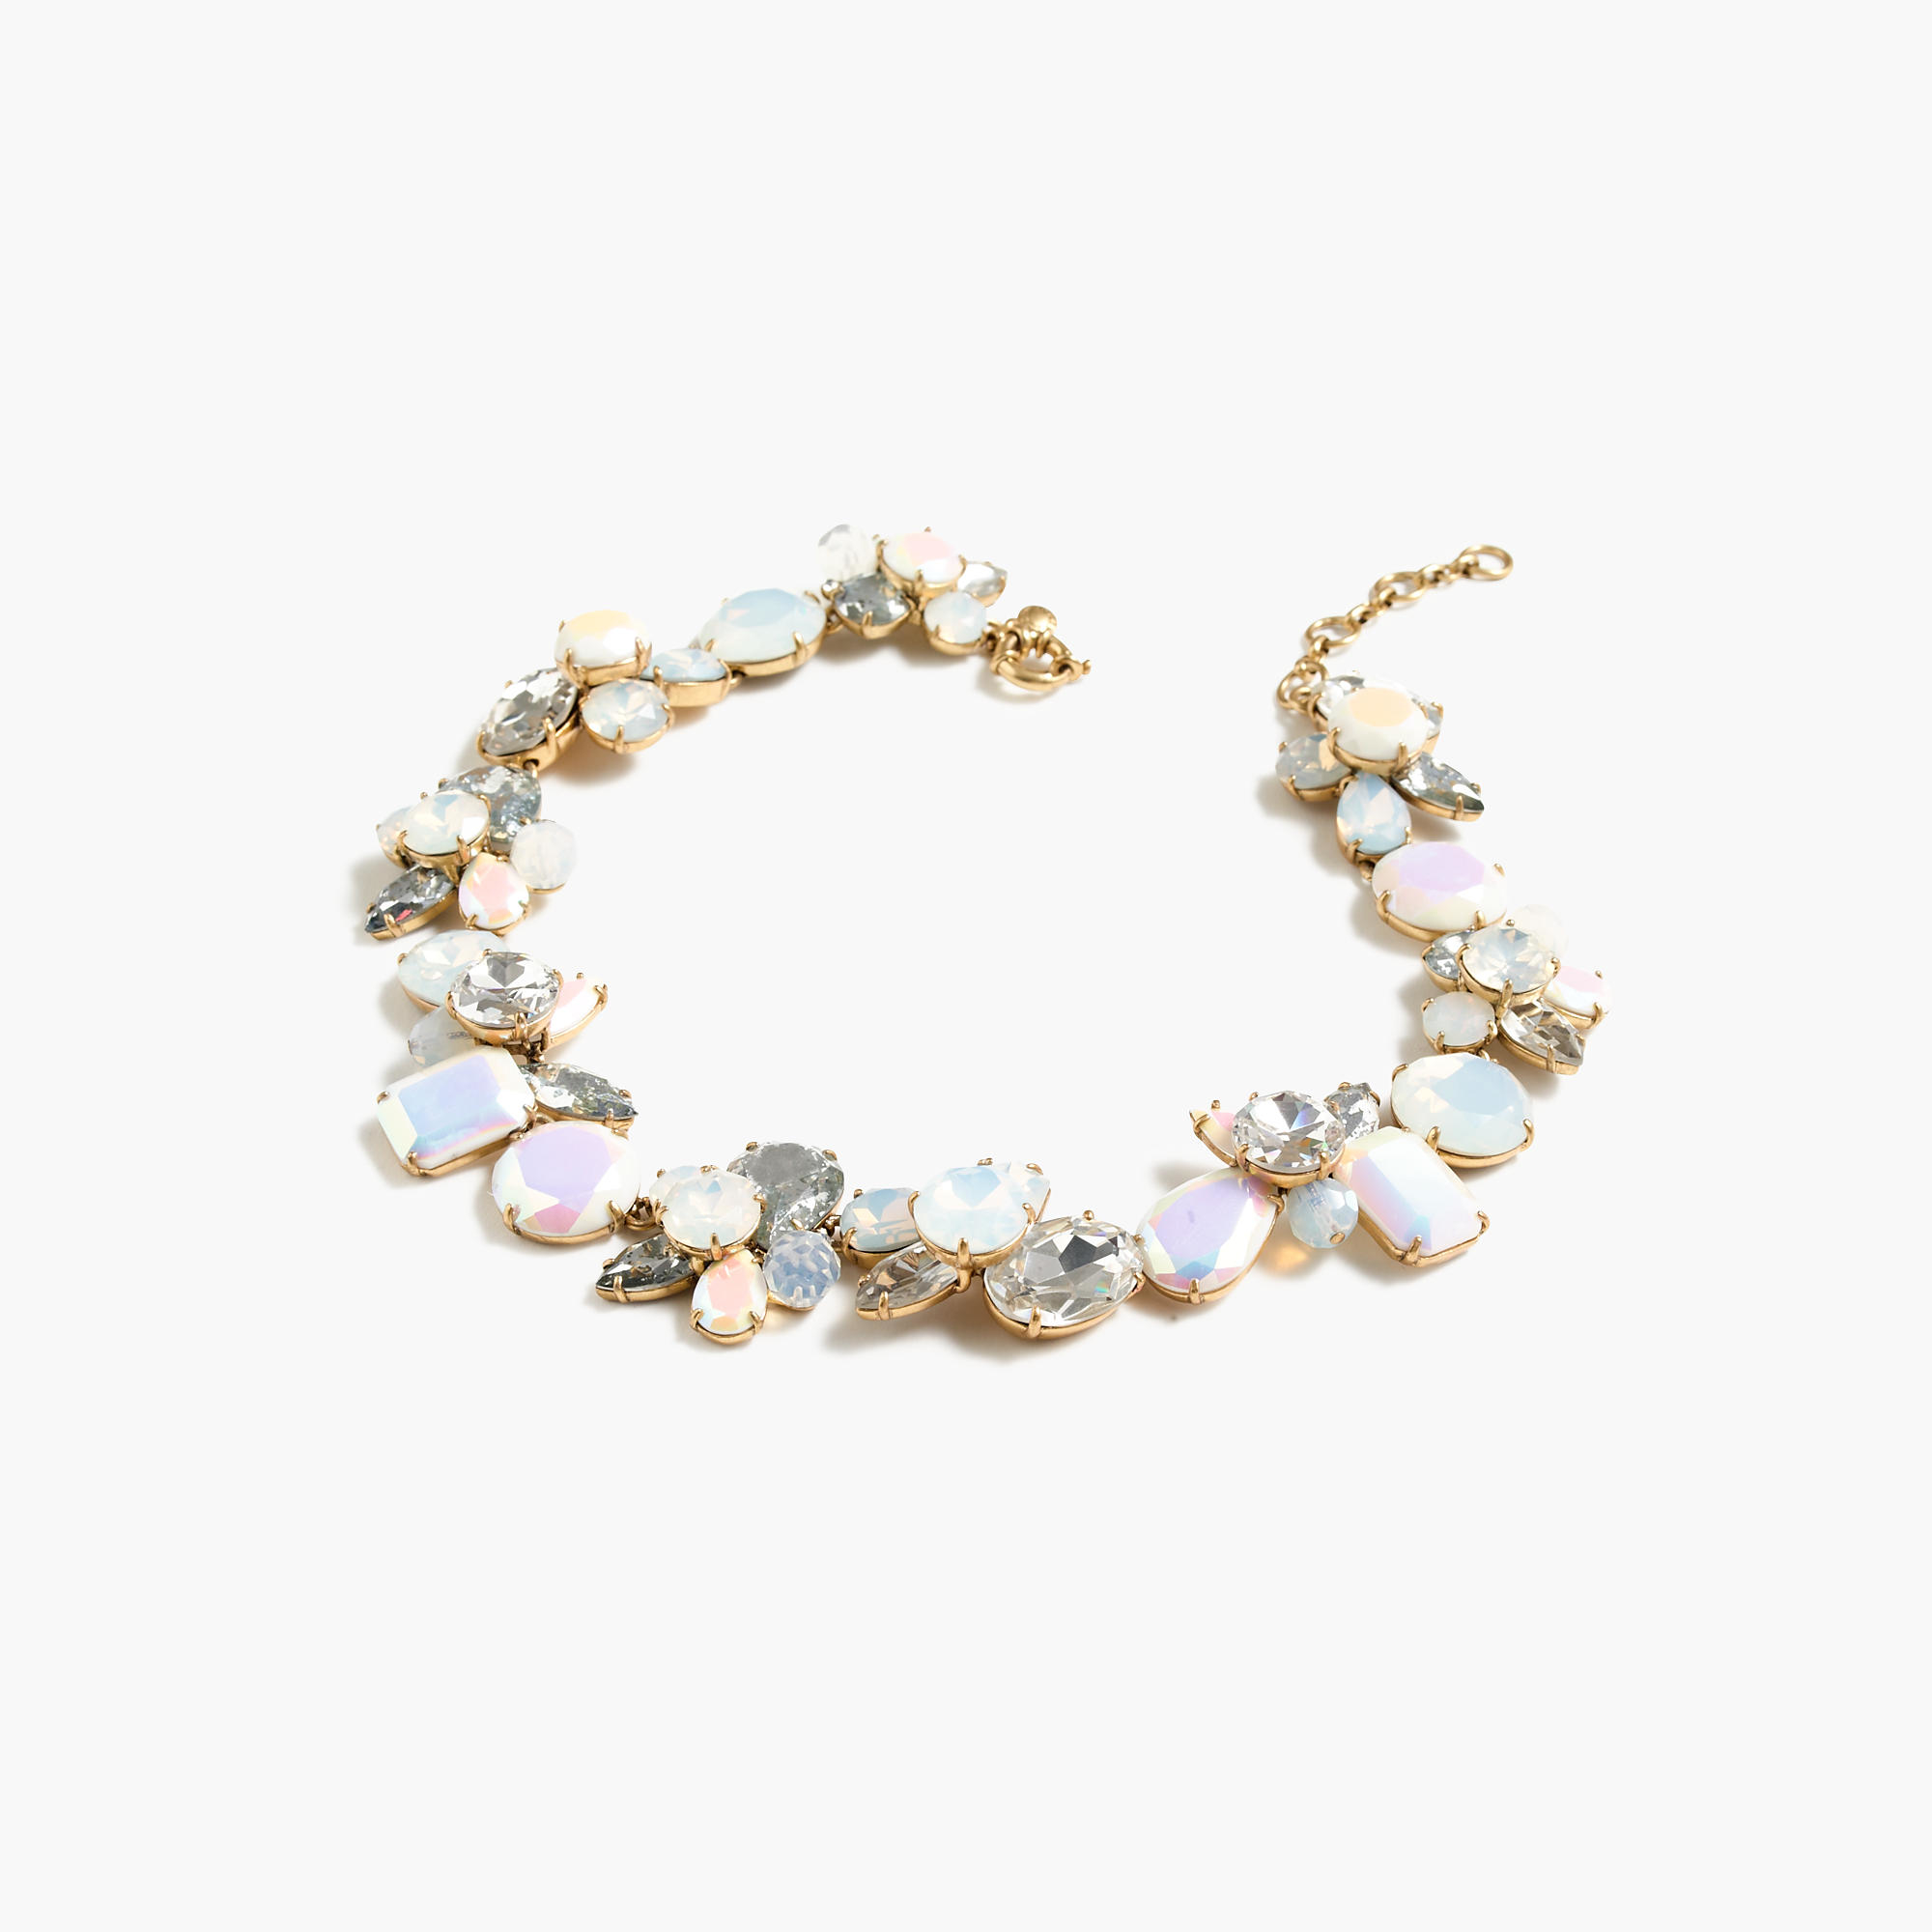 Crystal cluster necklace in multicolor marine salt for J crew jewelry 2015